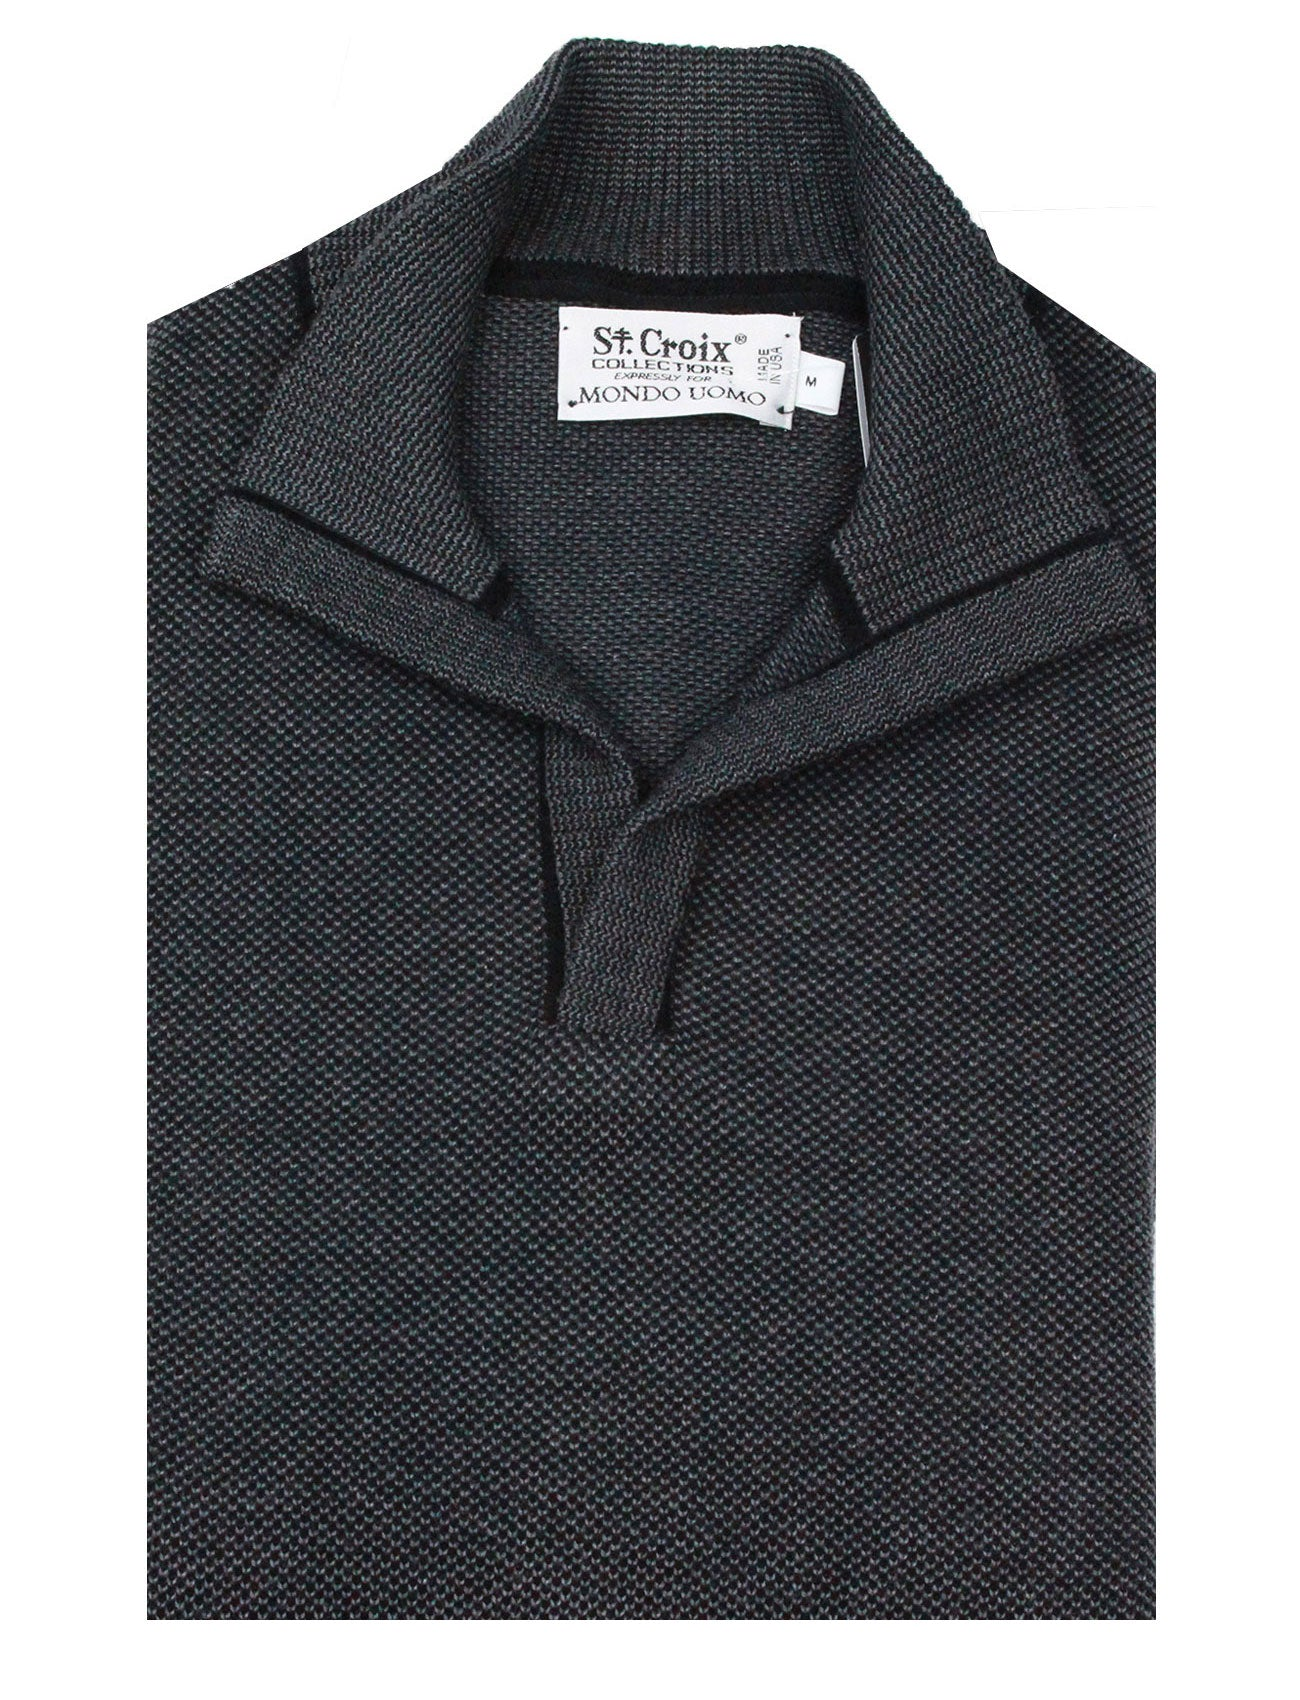 St Croix Sweater Open Mock Neck Black Lead